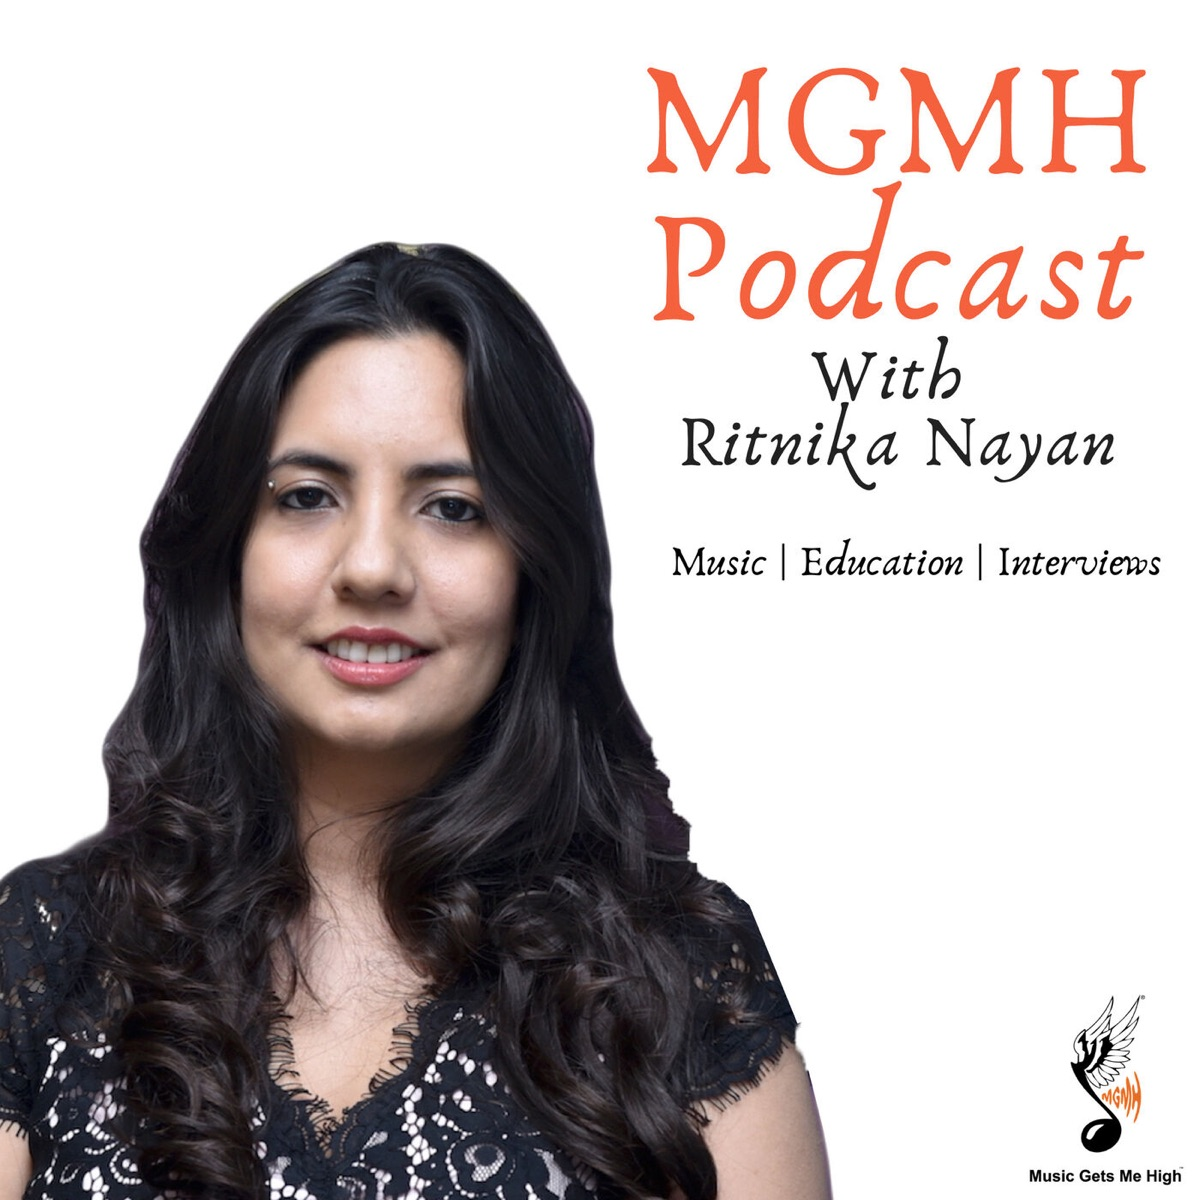 MGMH Podcast